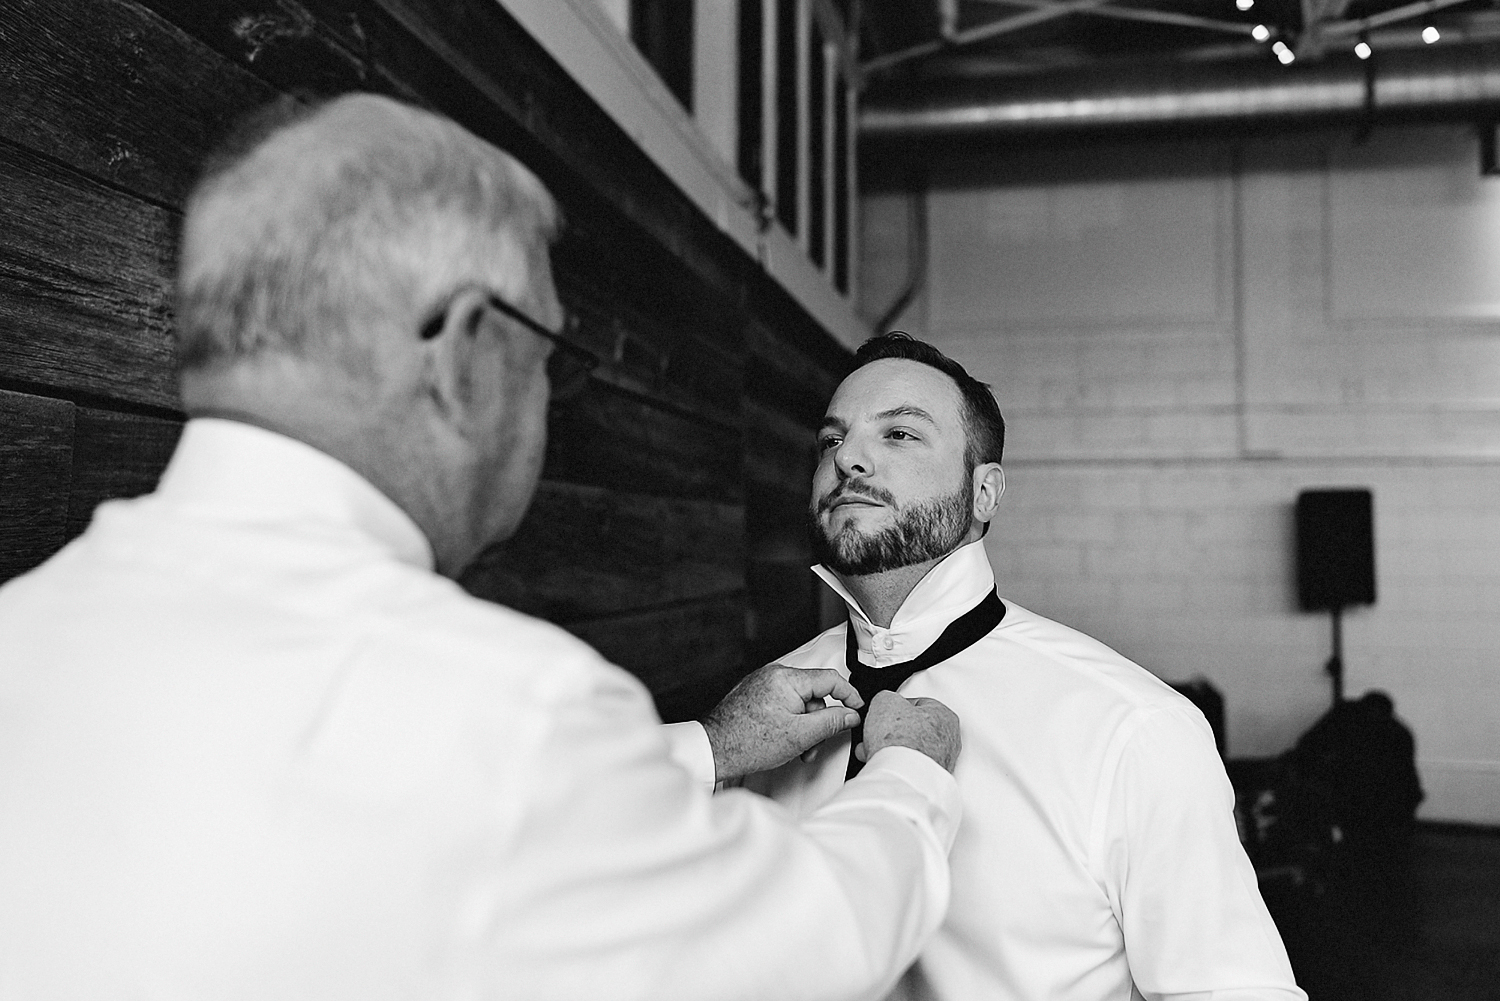 Toronto-Wedding-Photographers-3B-Photography-Airship37-Wedding-Photos-Documentary-Photojournalistic-Wedding-Photography-Venue-Details-Father-of-the-bride-helping-groom-with-tie.jpg